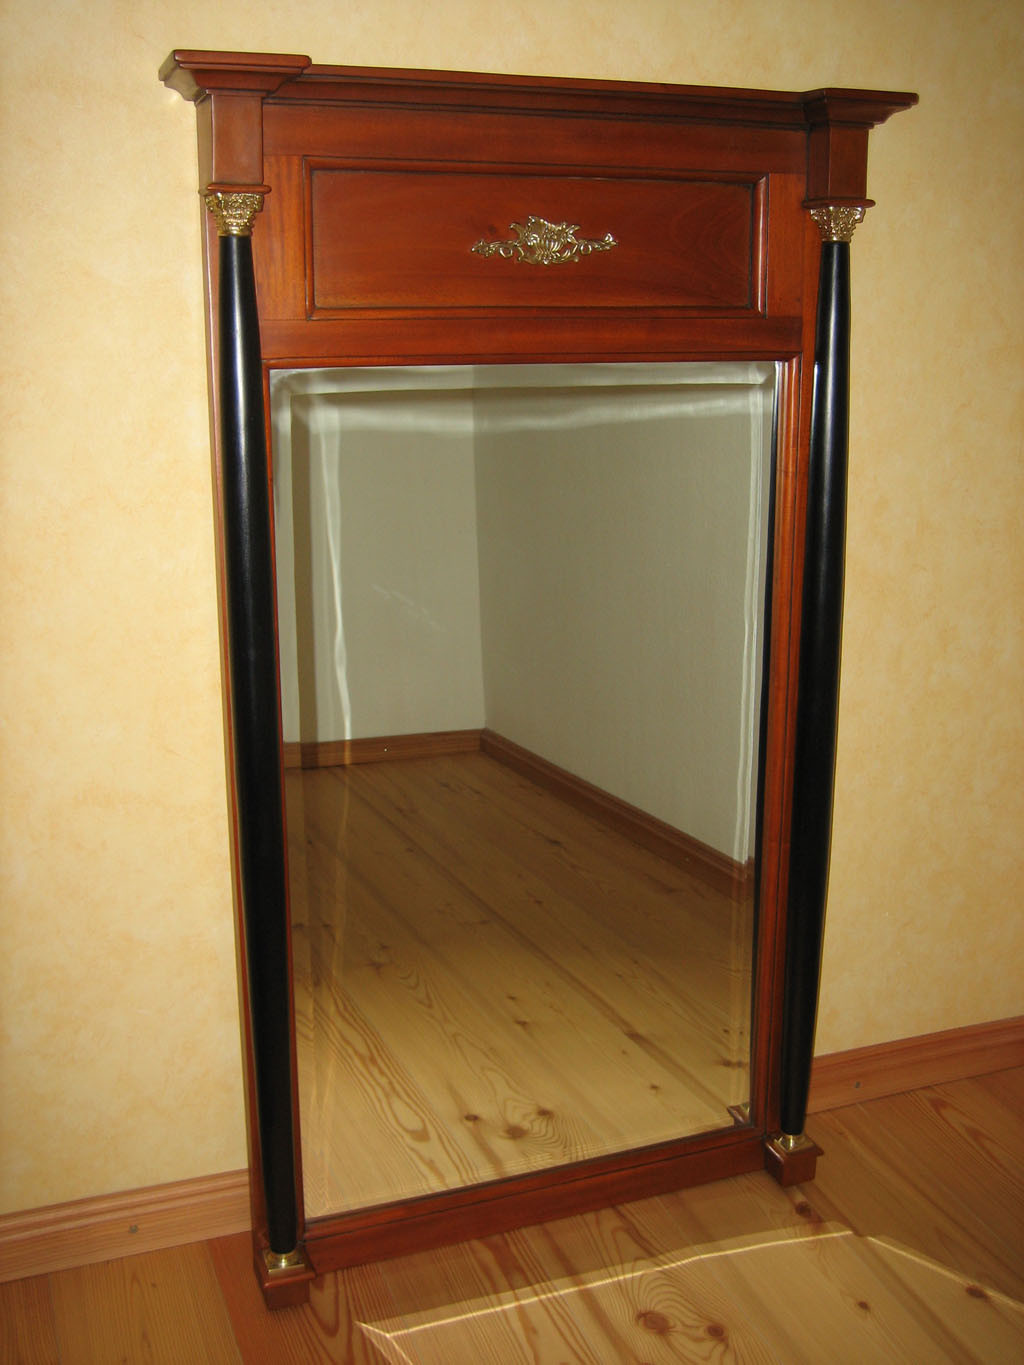 biedermeier spiegel kirsche massiv stil antik. Black Bedroom Furniture Sets. Home Design Ideas